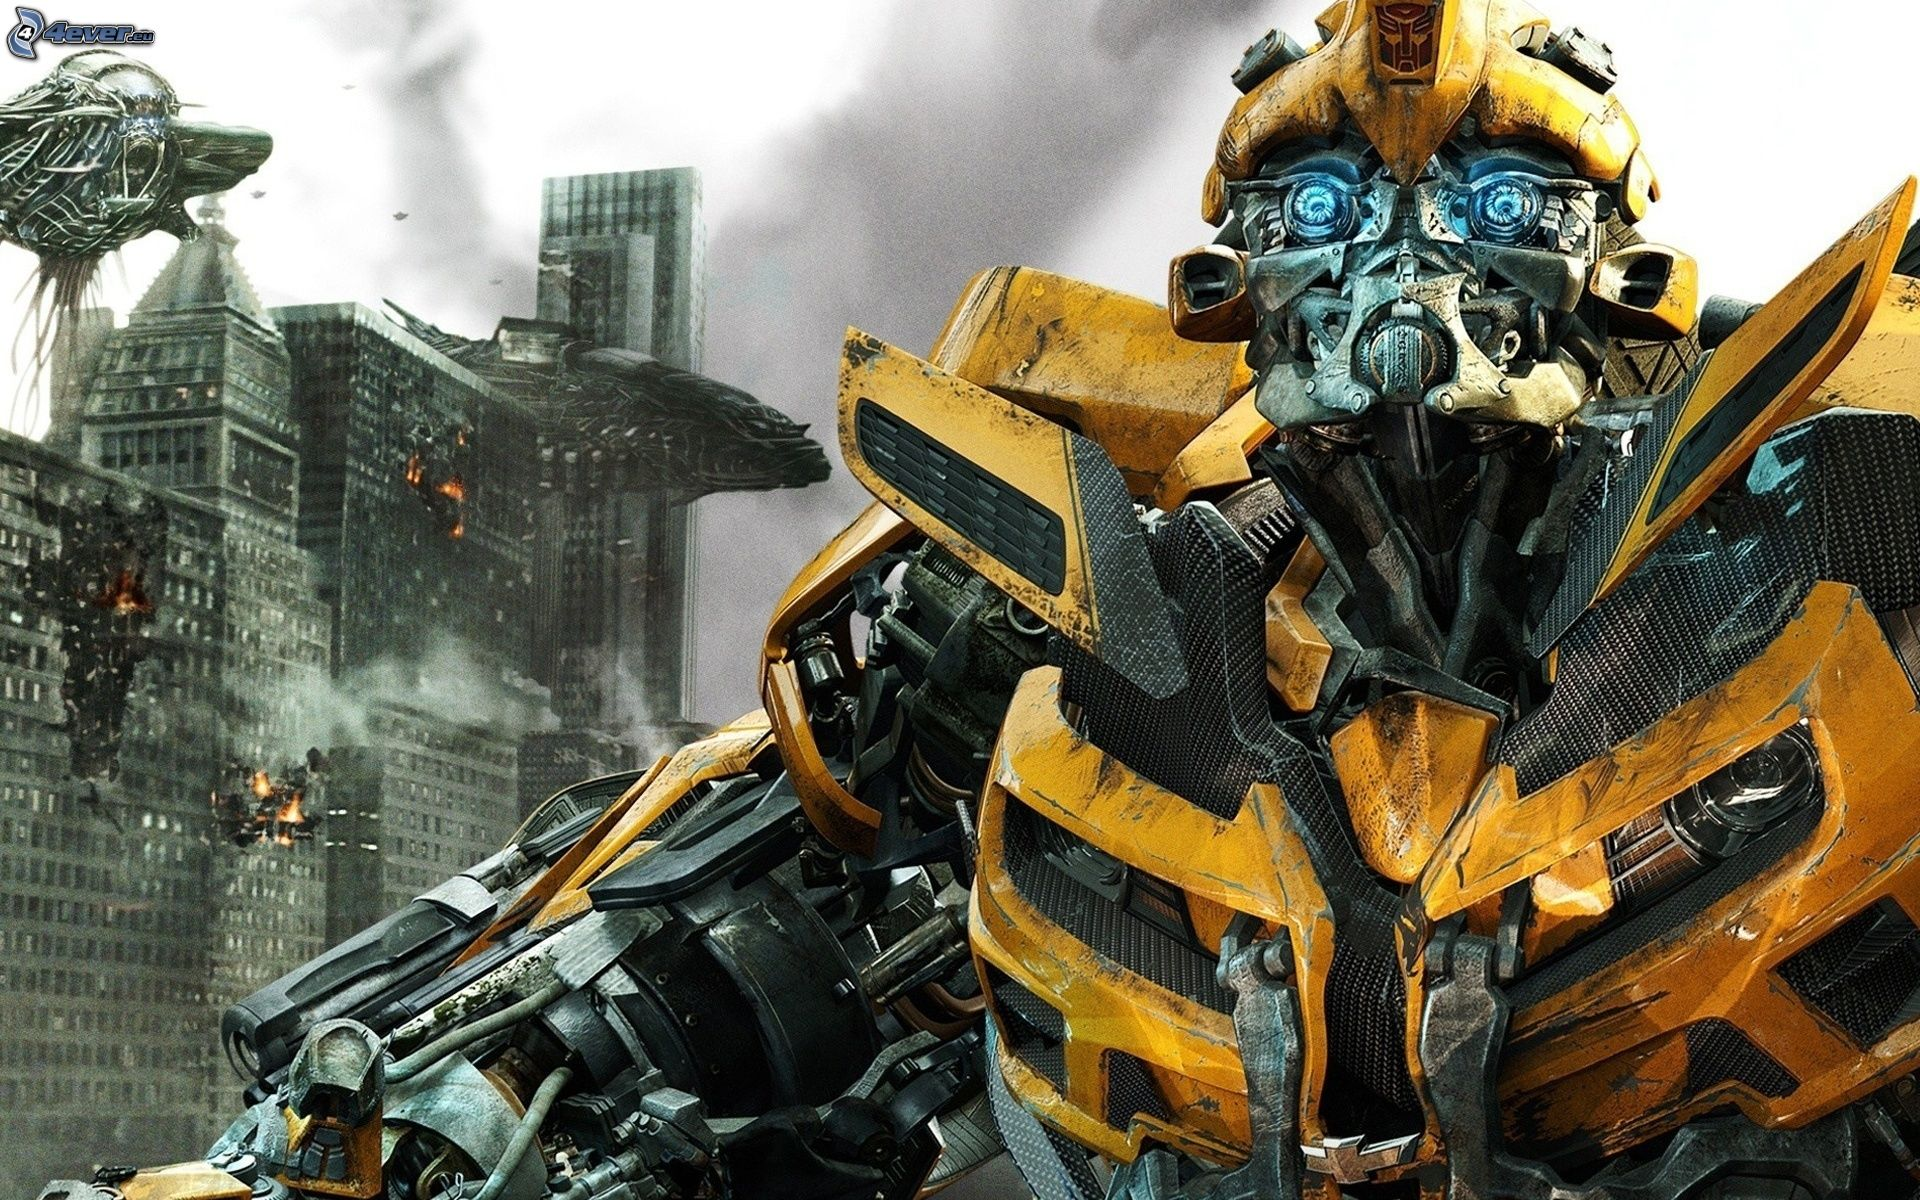 transformers-3-161182-1-transformers-5-confirmed-for-2016-release